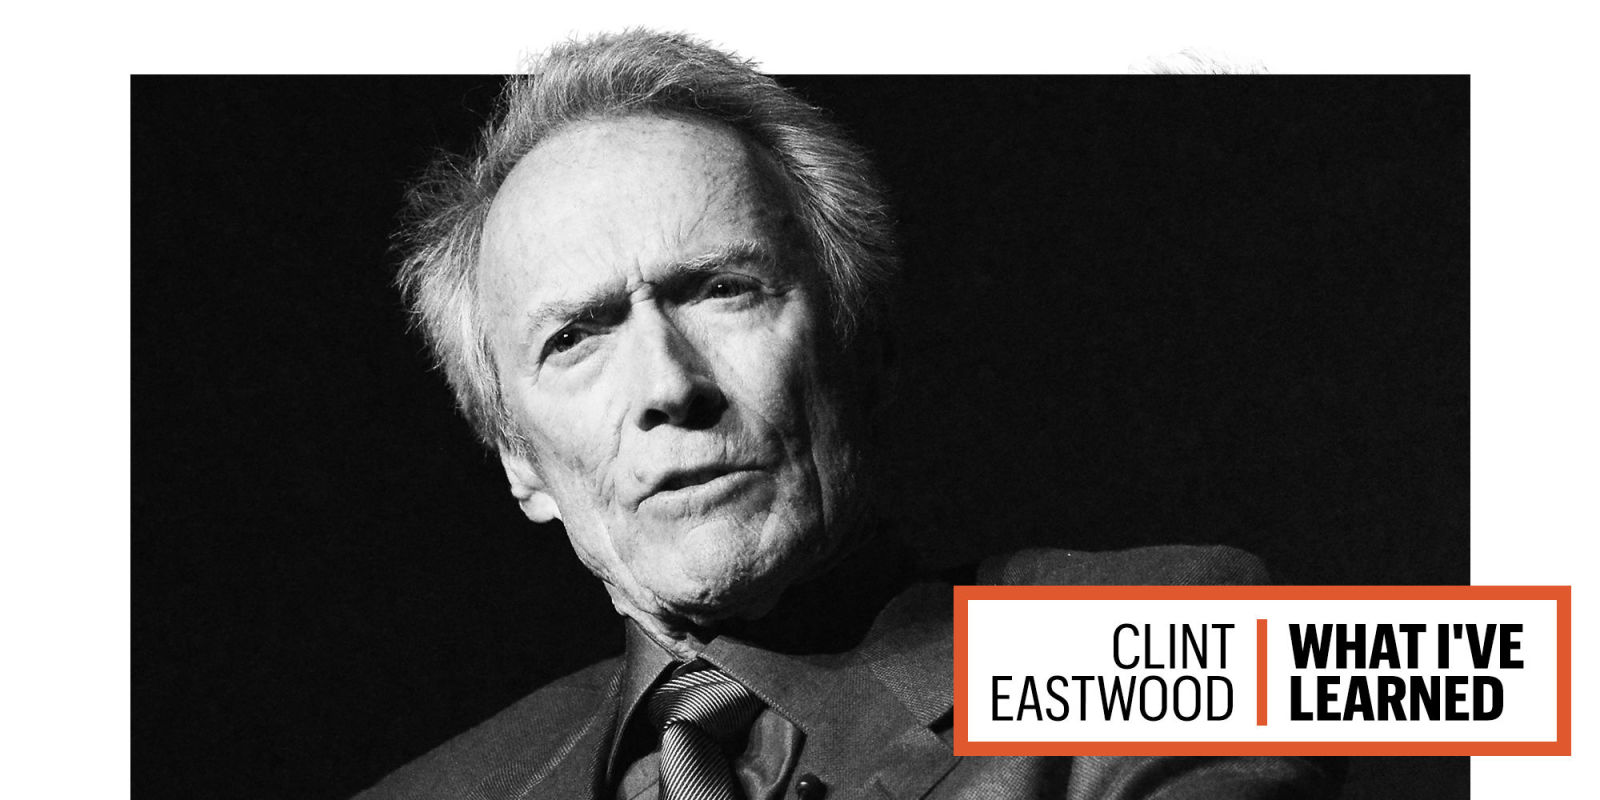 landscape-1430337001-whativelearned-clinteastwood.jpg